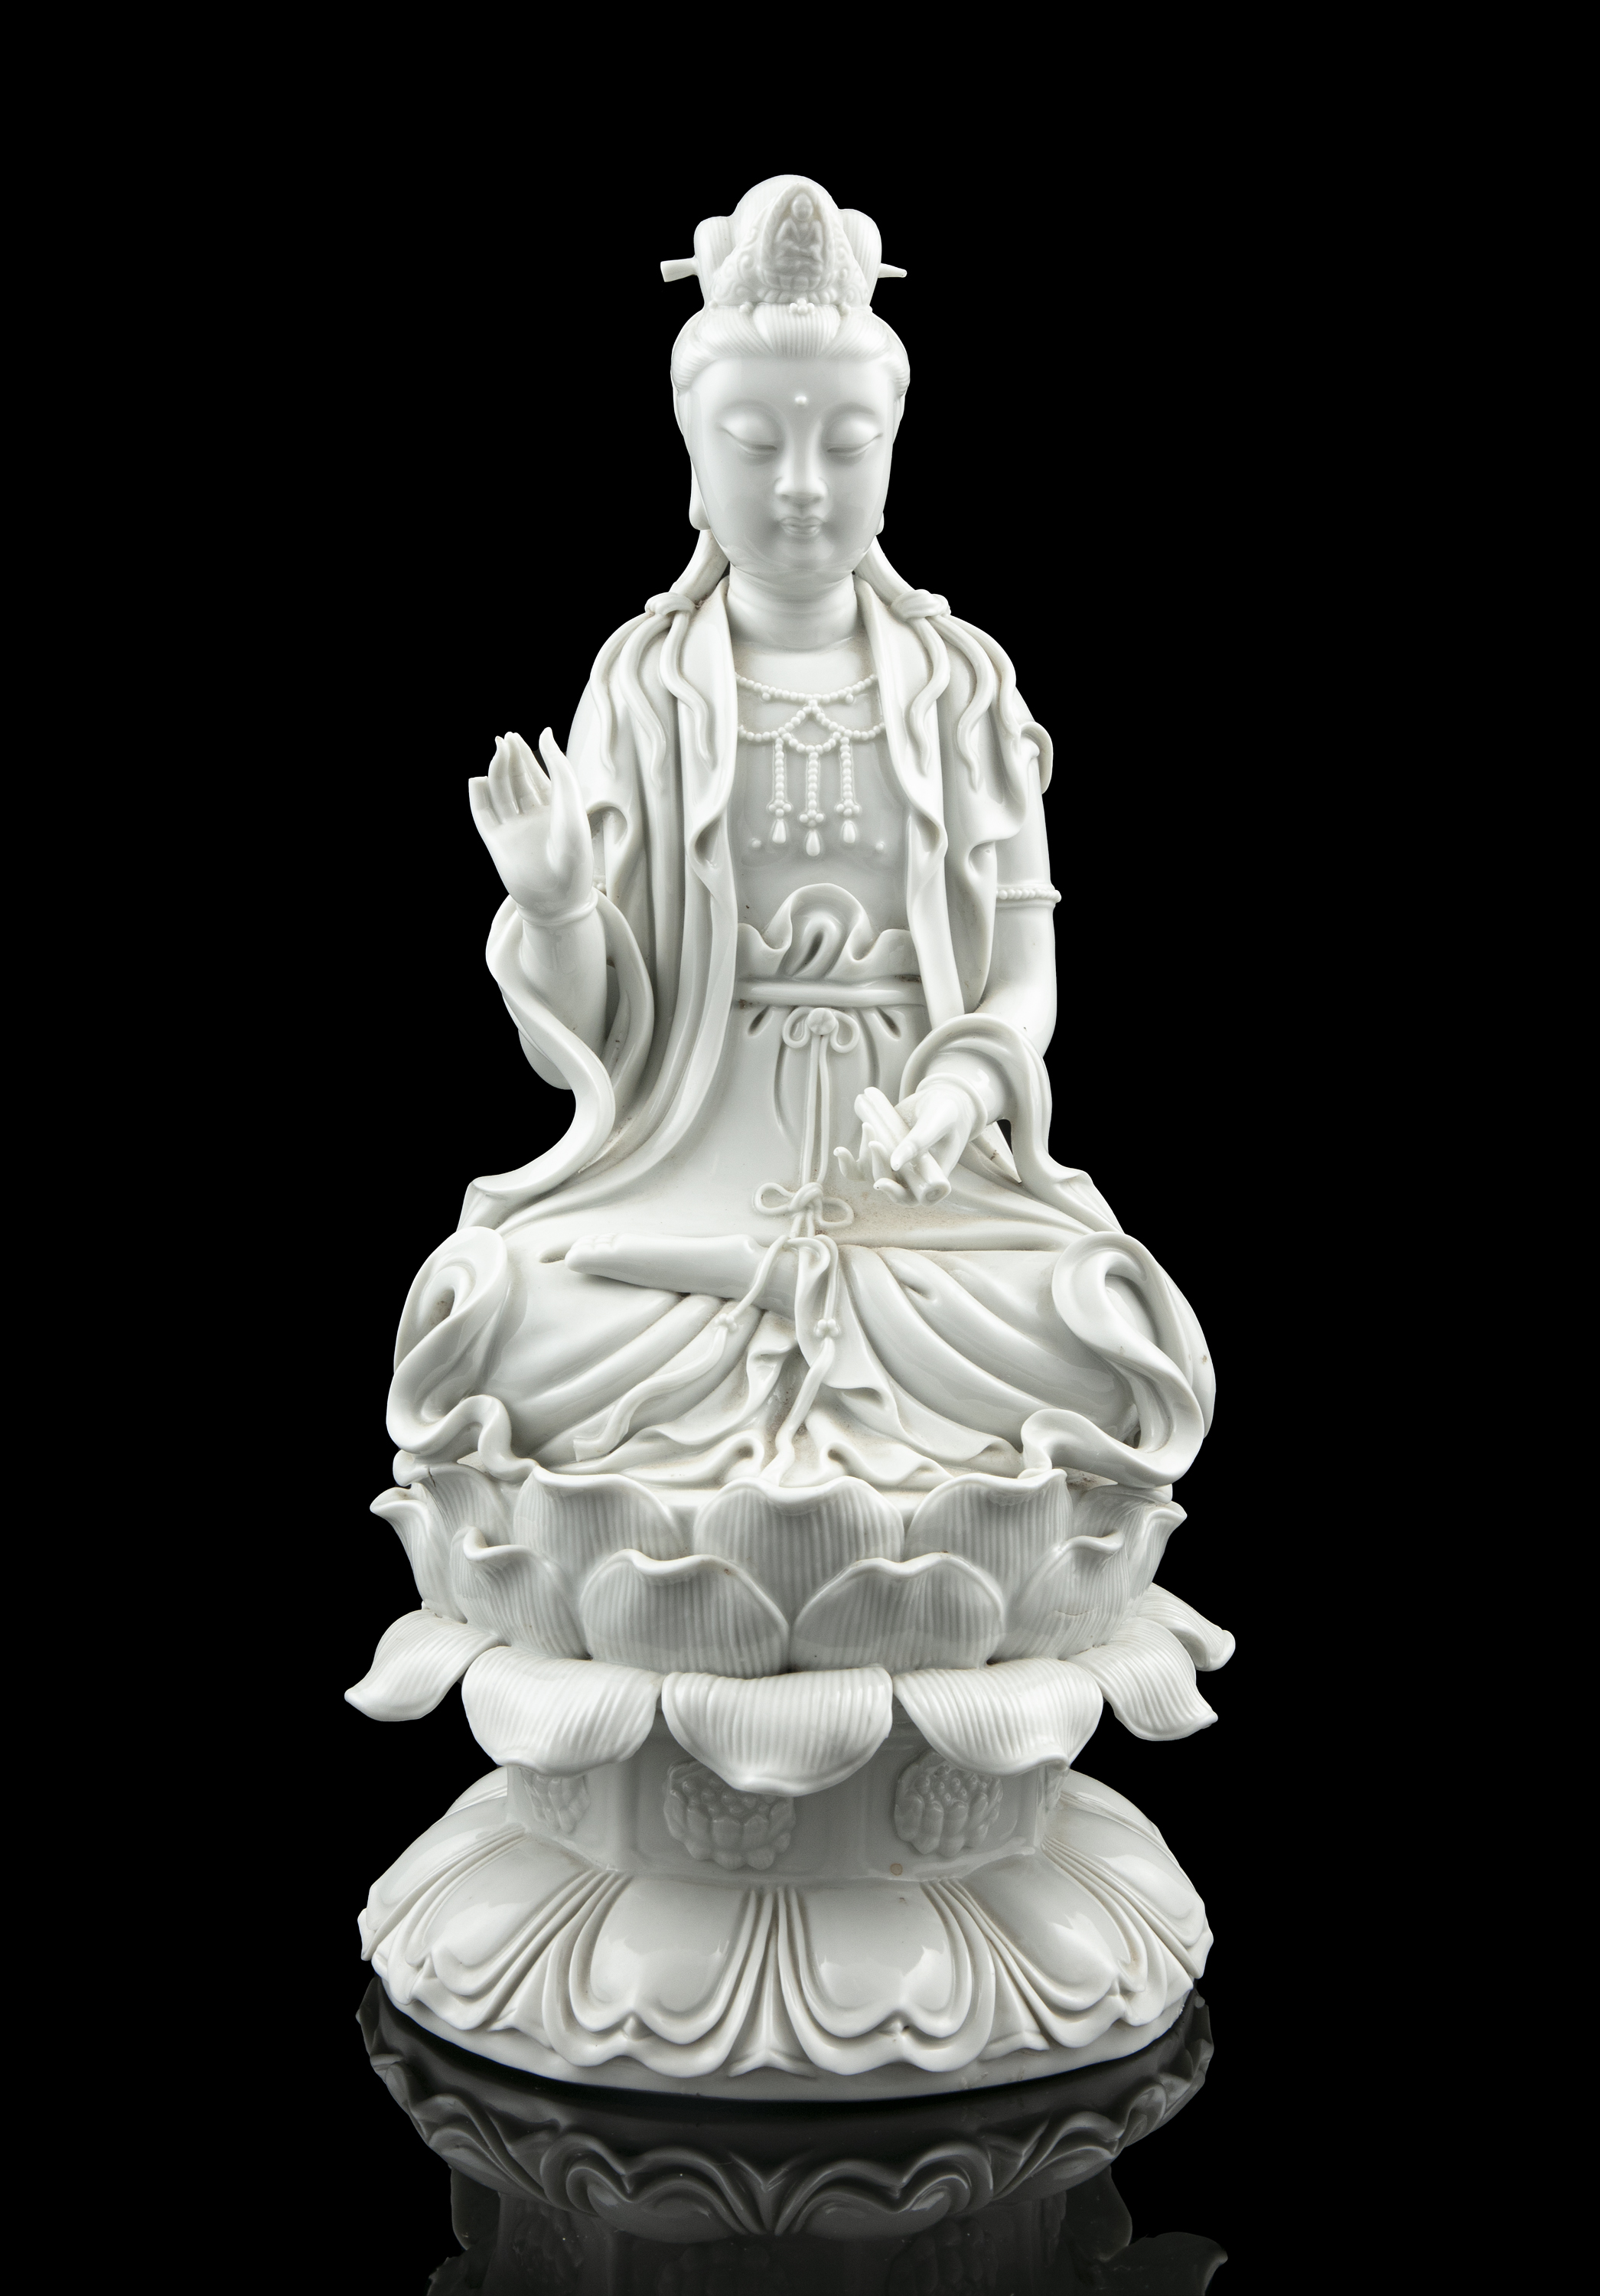 A LARGE DEHUA FIGURE OF A SEATED GUANYIN China, 19th to 20th century The goddess of mercy is